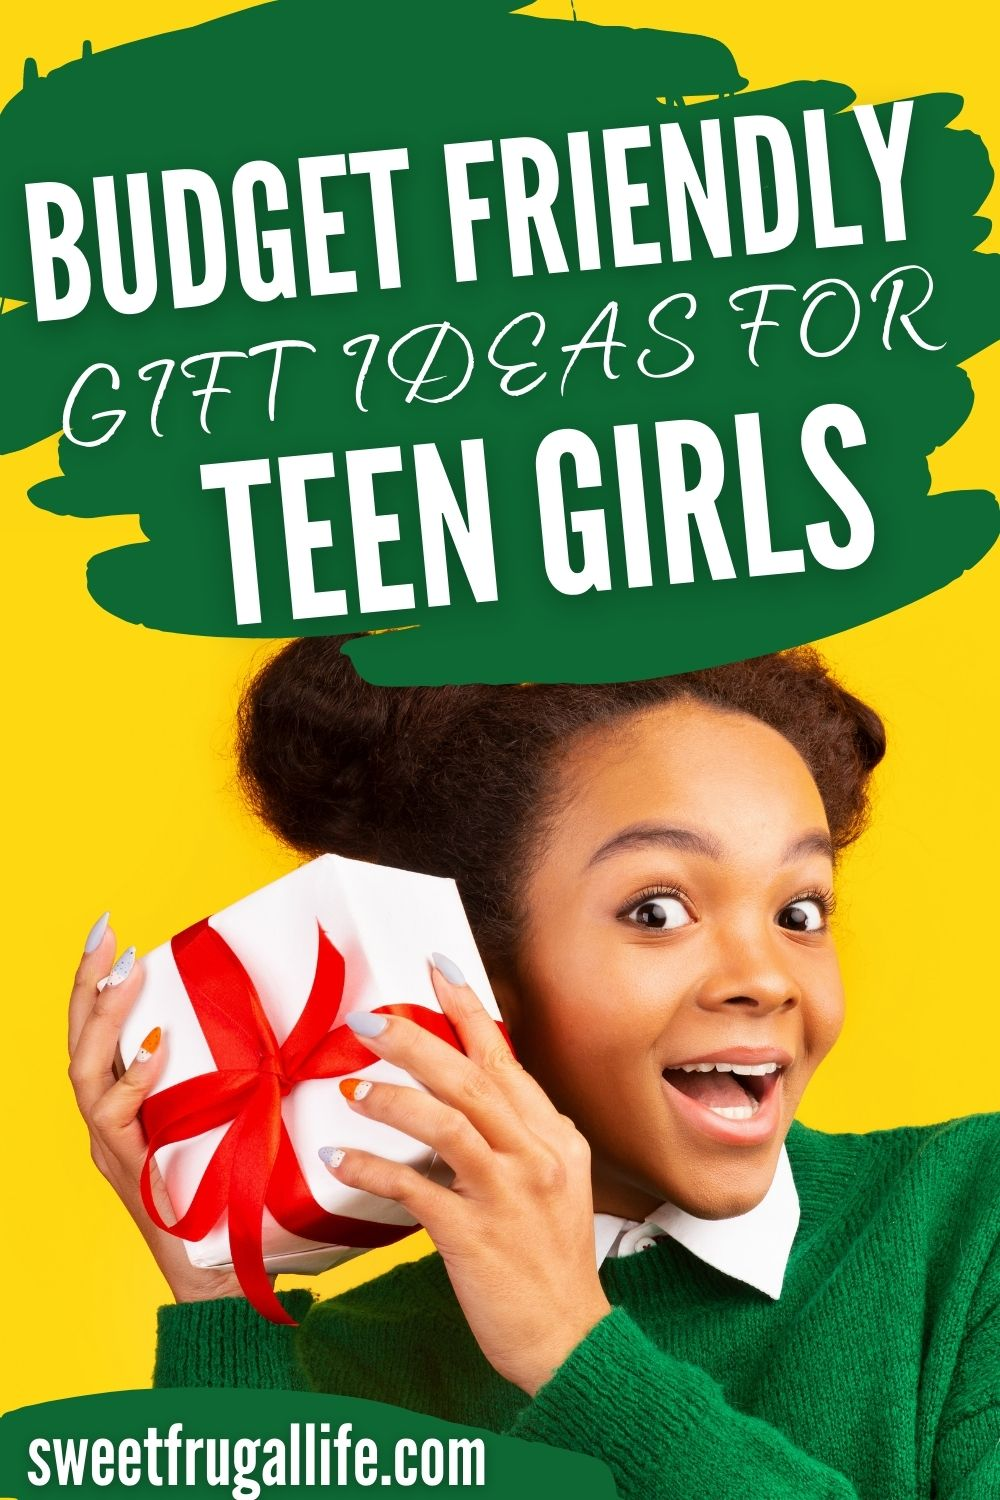 budget friendly gifts for teen girls - christmas gift ideas for teens